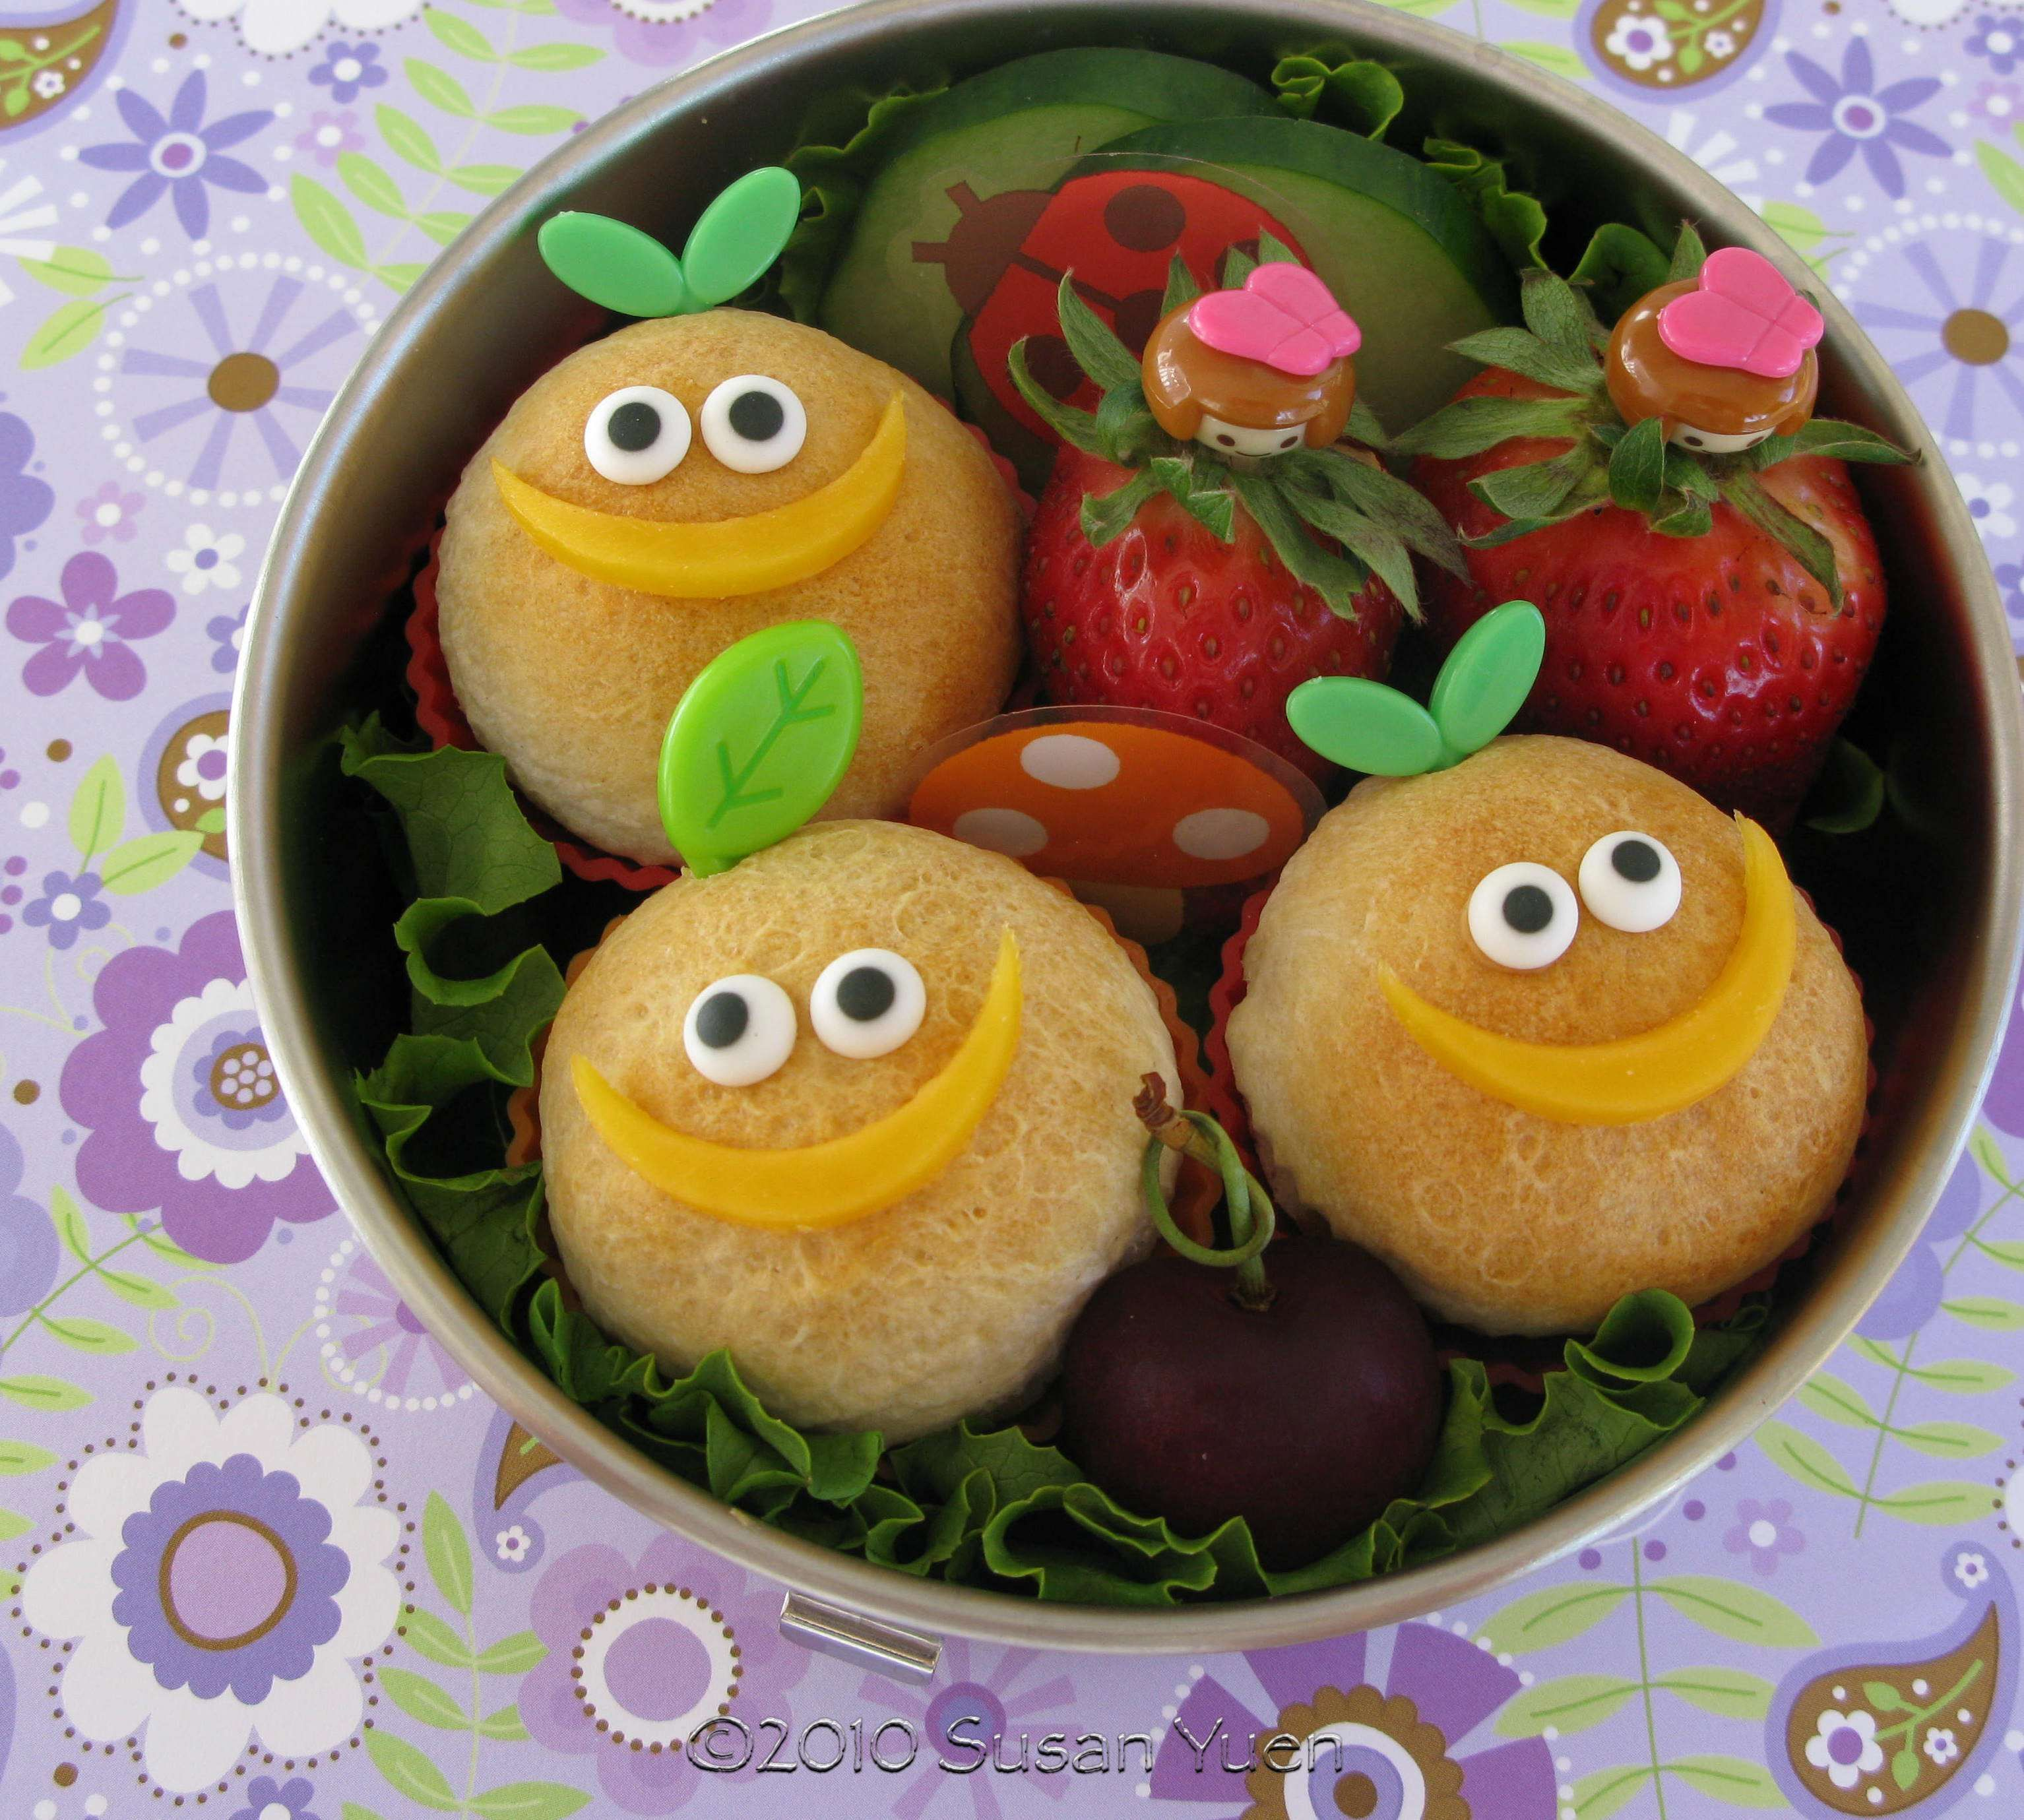 Susan has a lot of cute and cool Bento idea's on her blog: